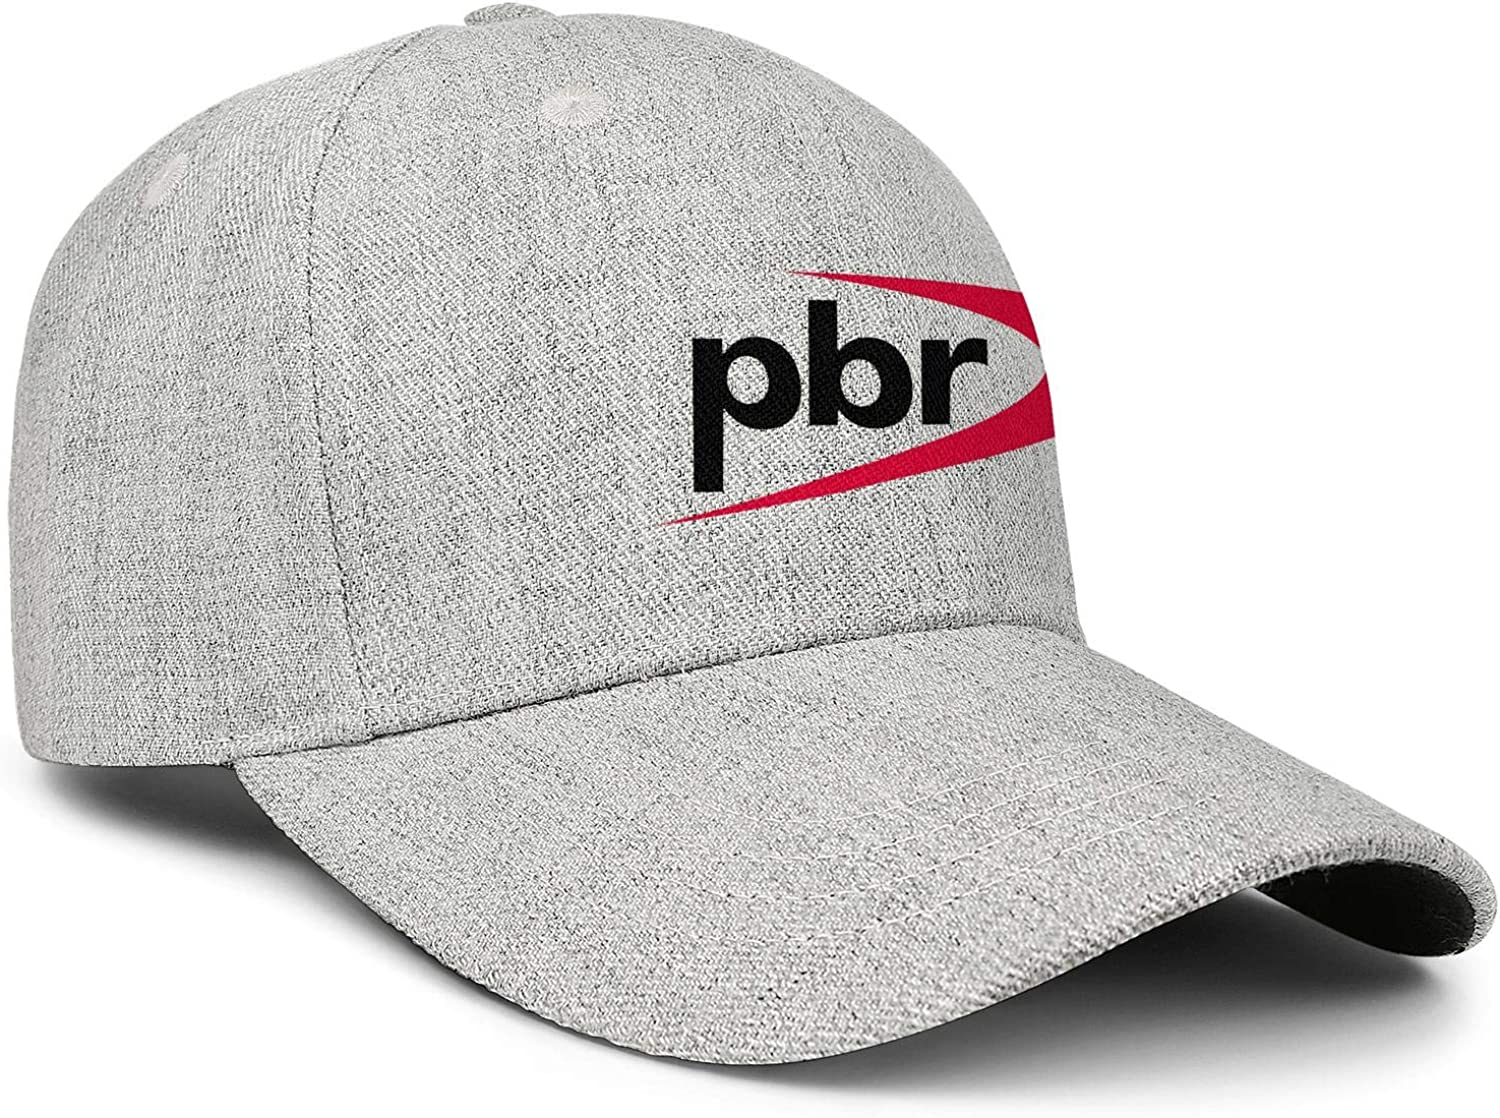 PBR-Brake-Rotor-Discs-Pair Adjustable Wool Blend Ball Hat Mens Womens Superlite Summer Hats